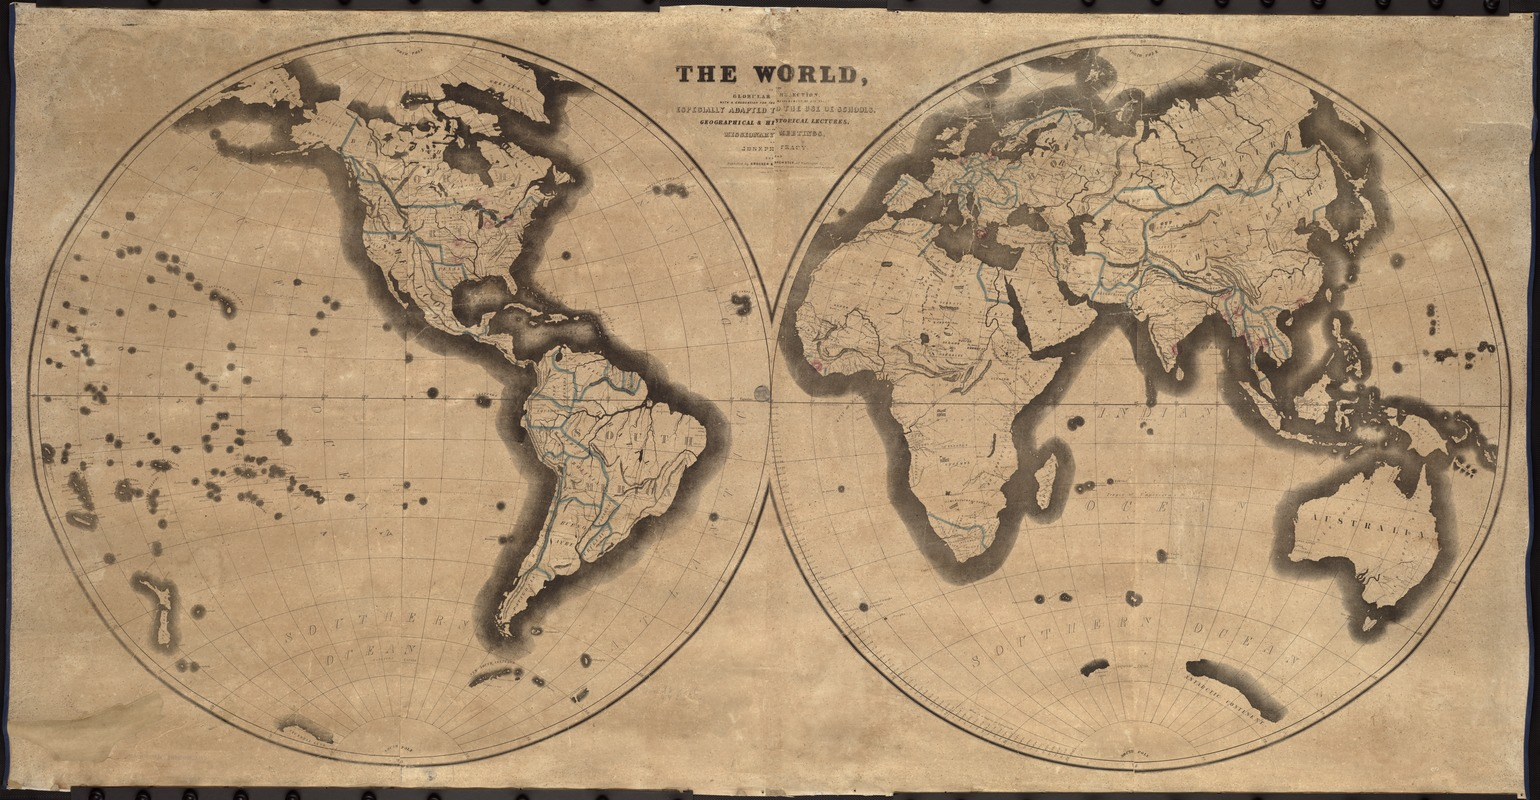 The World, on the globular projection with a graduation for the measurement of distances especially adapted for the use oe [sic] schools, geographical & historical lectures, and missionary meetings